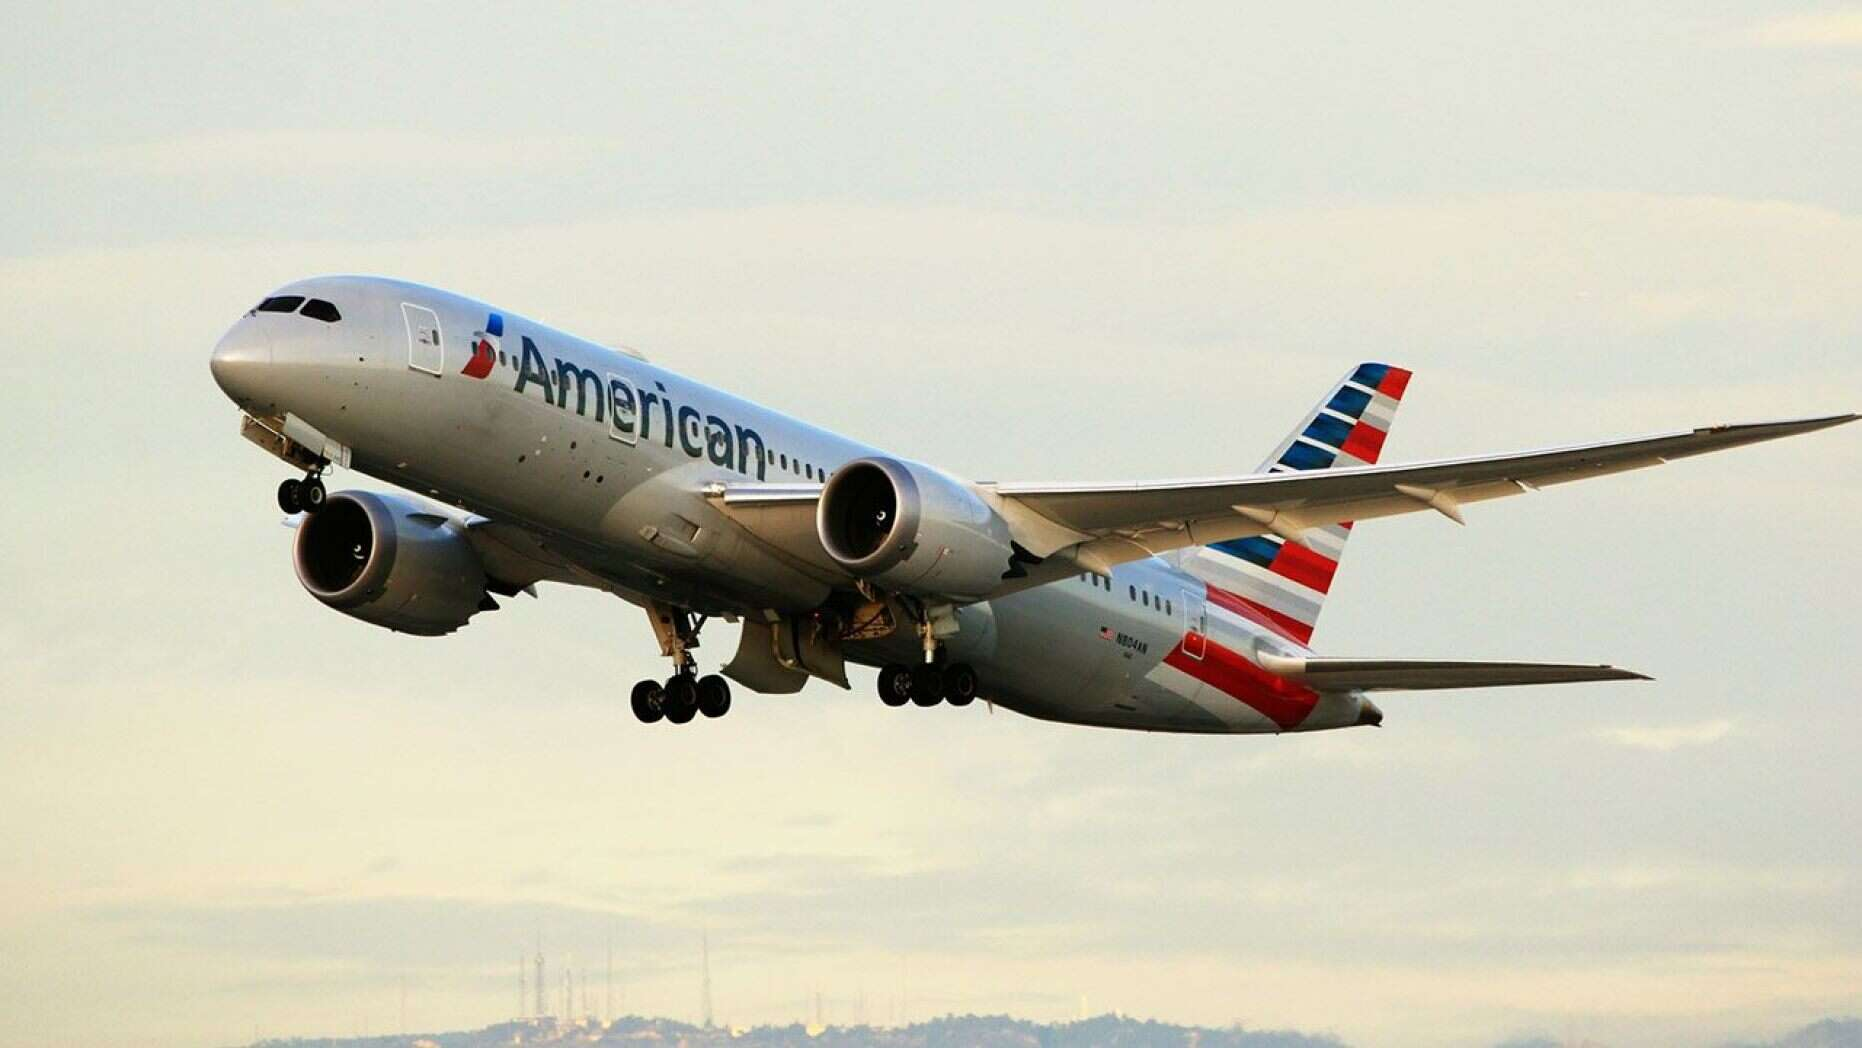 American Airlines responds to JetBlue in Hartford, fills United's gap in Vail